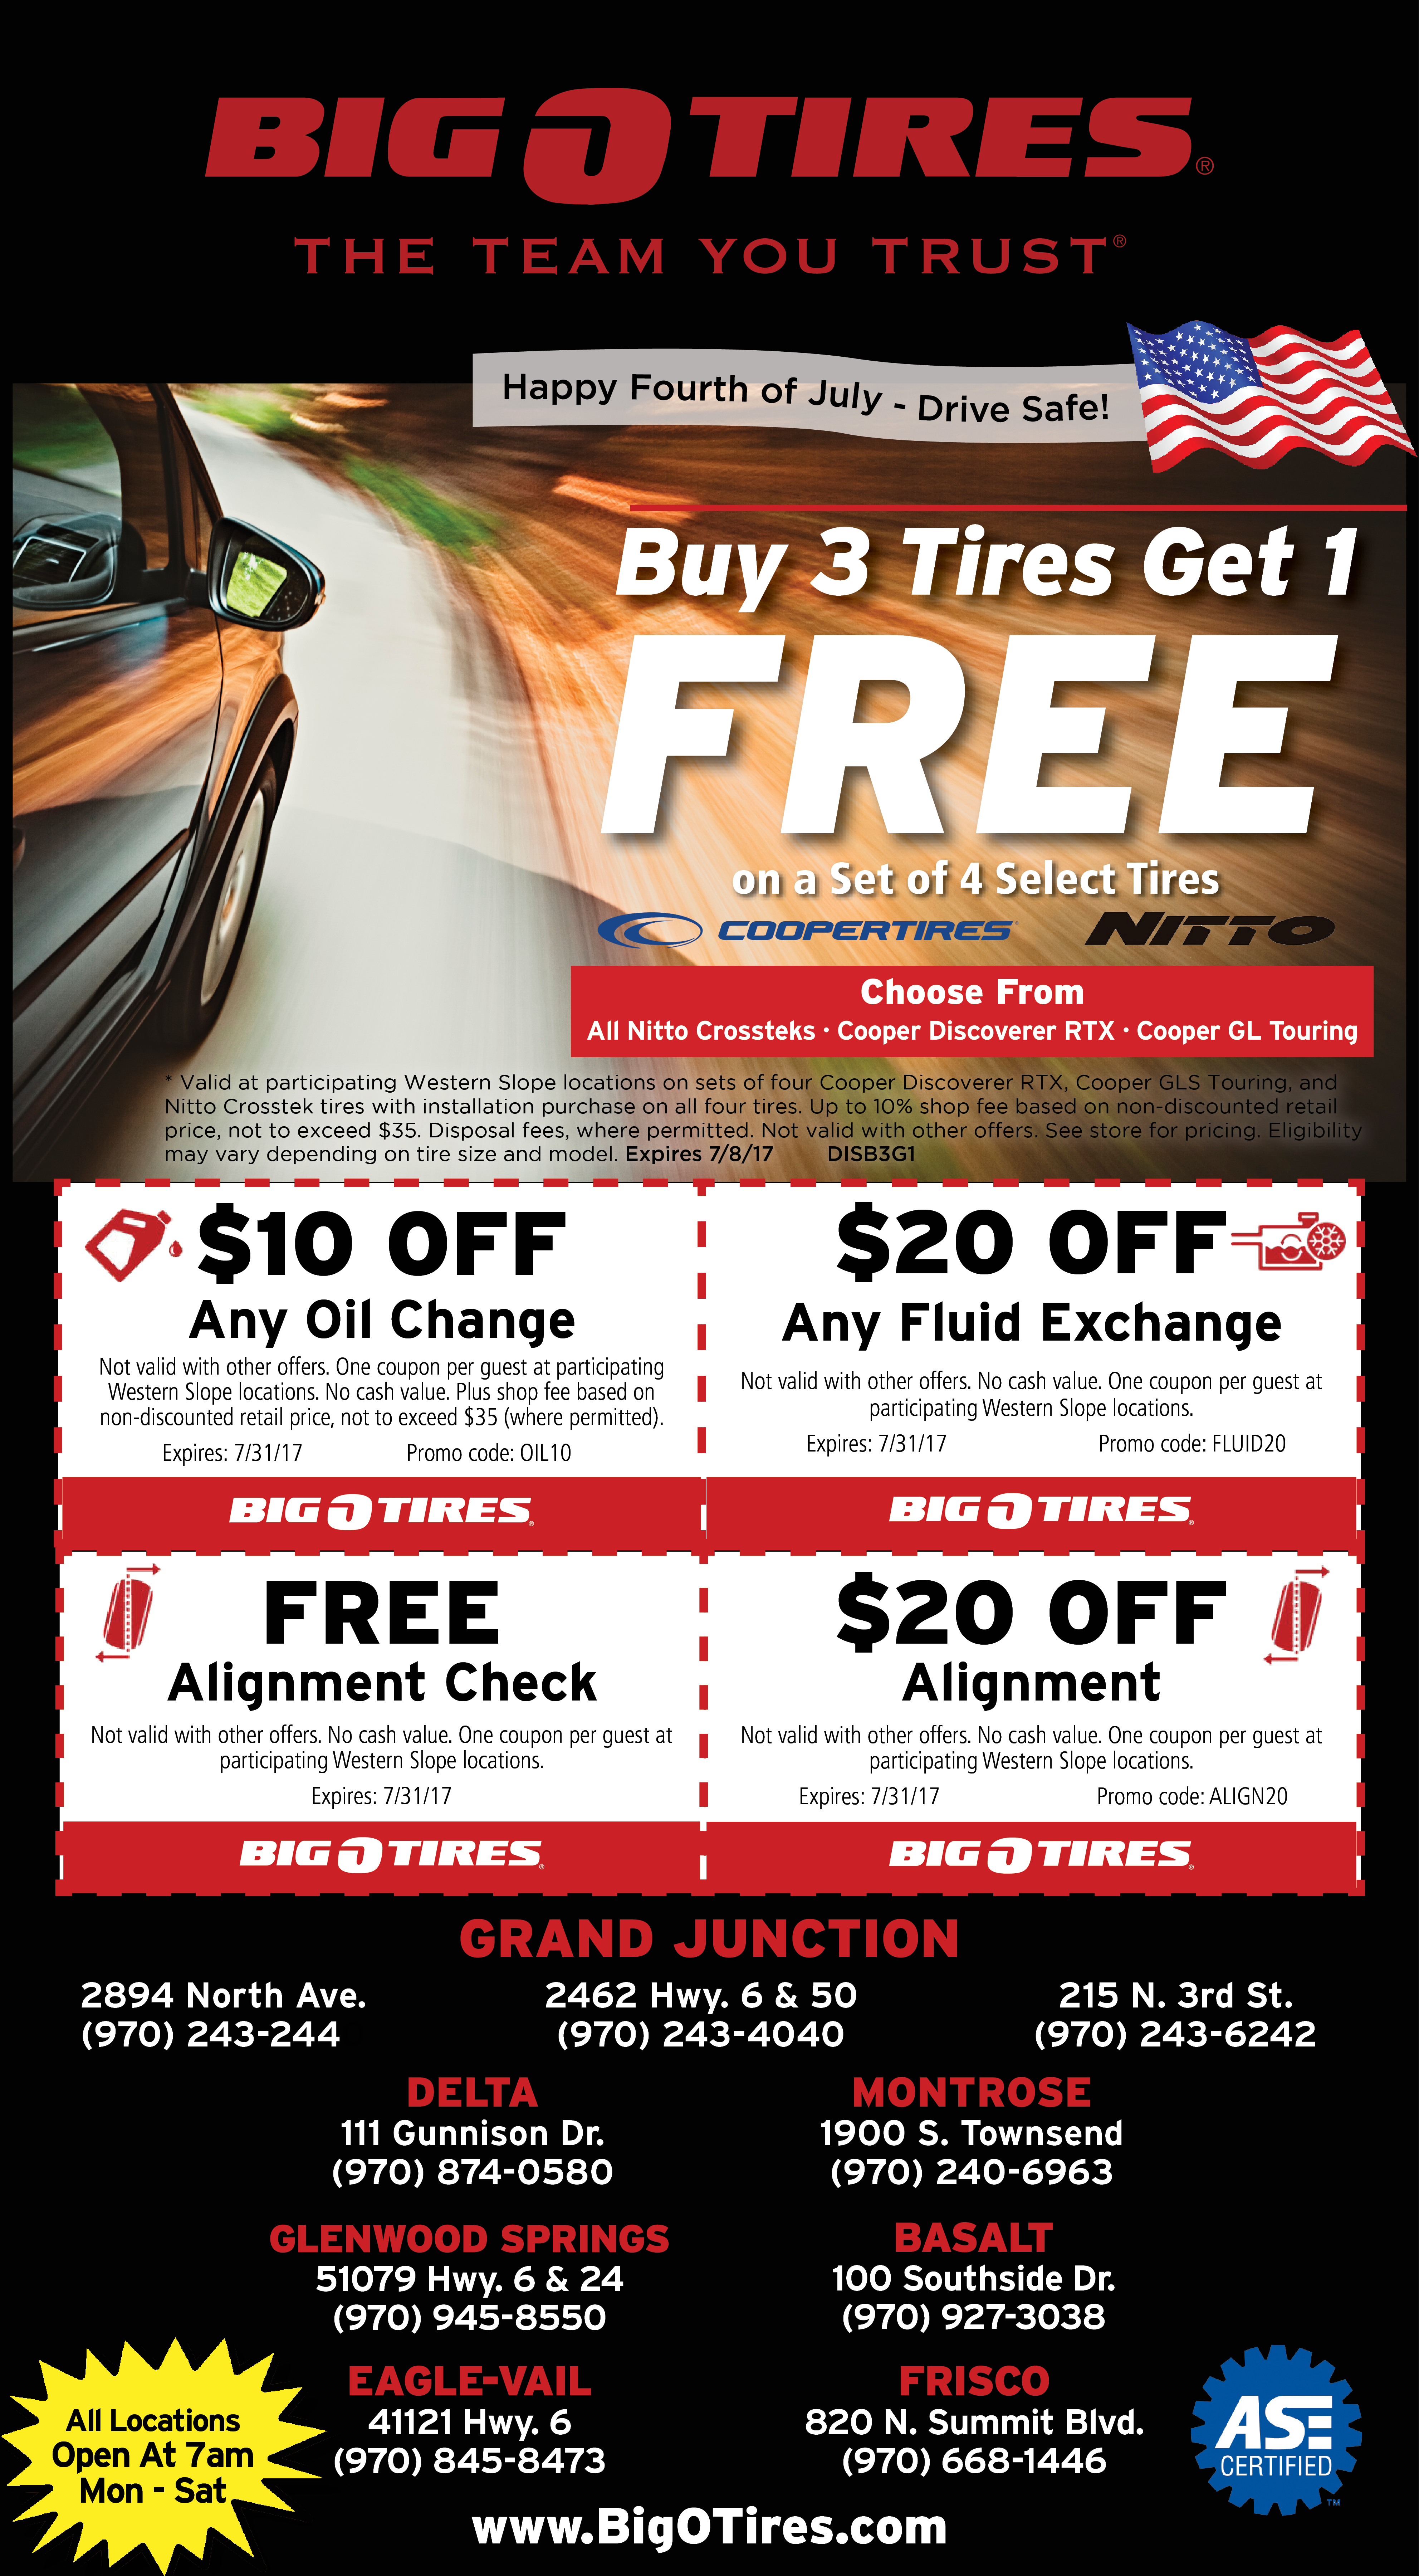 Big O Tires stores in Southern California & Las Vegas are currently running a Friends & Family Buy 2 Get 2 Free Sale. The Buy 2 Get 2 Free offer is a package that includes a one-year alignment and their tire protection plan (free rotations, free balancing, free .